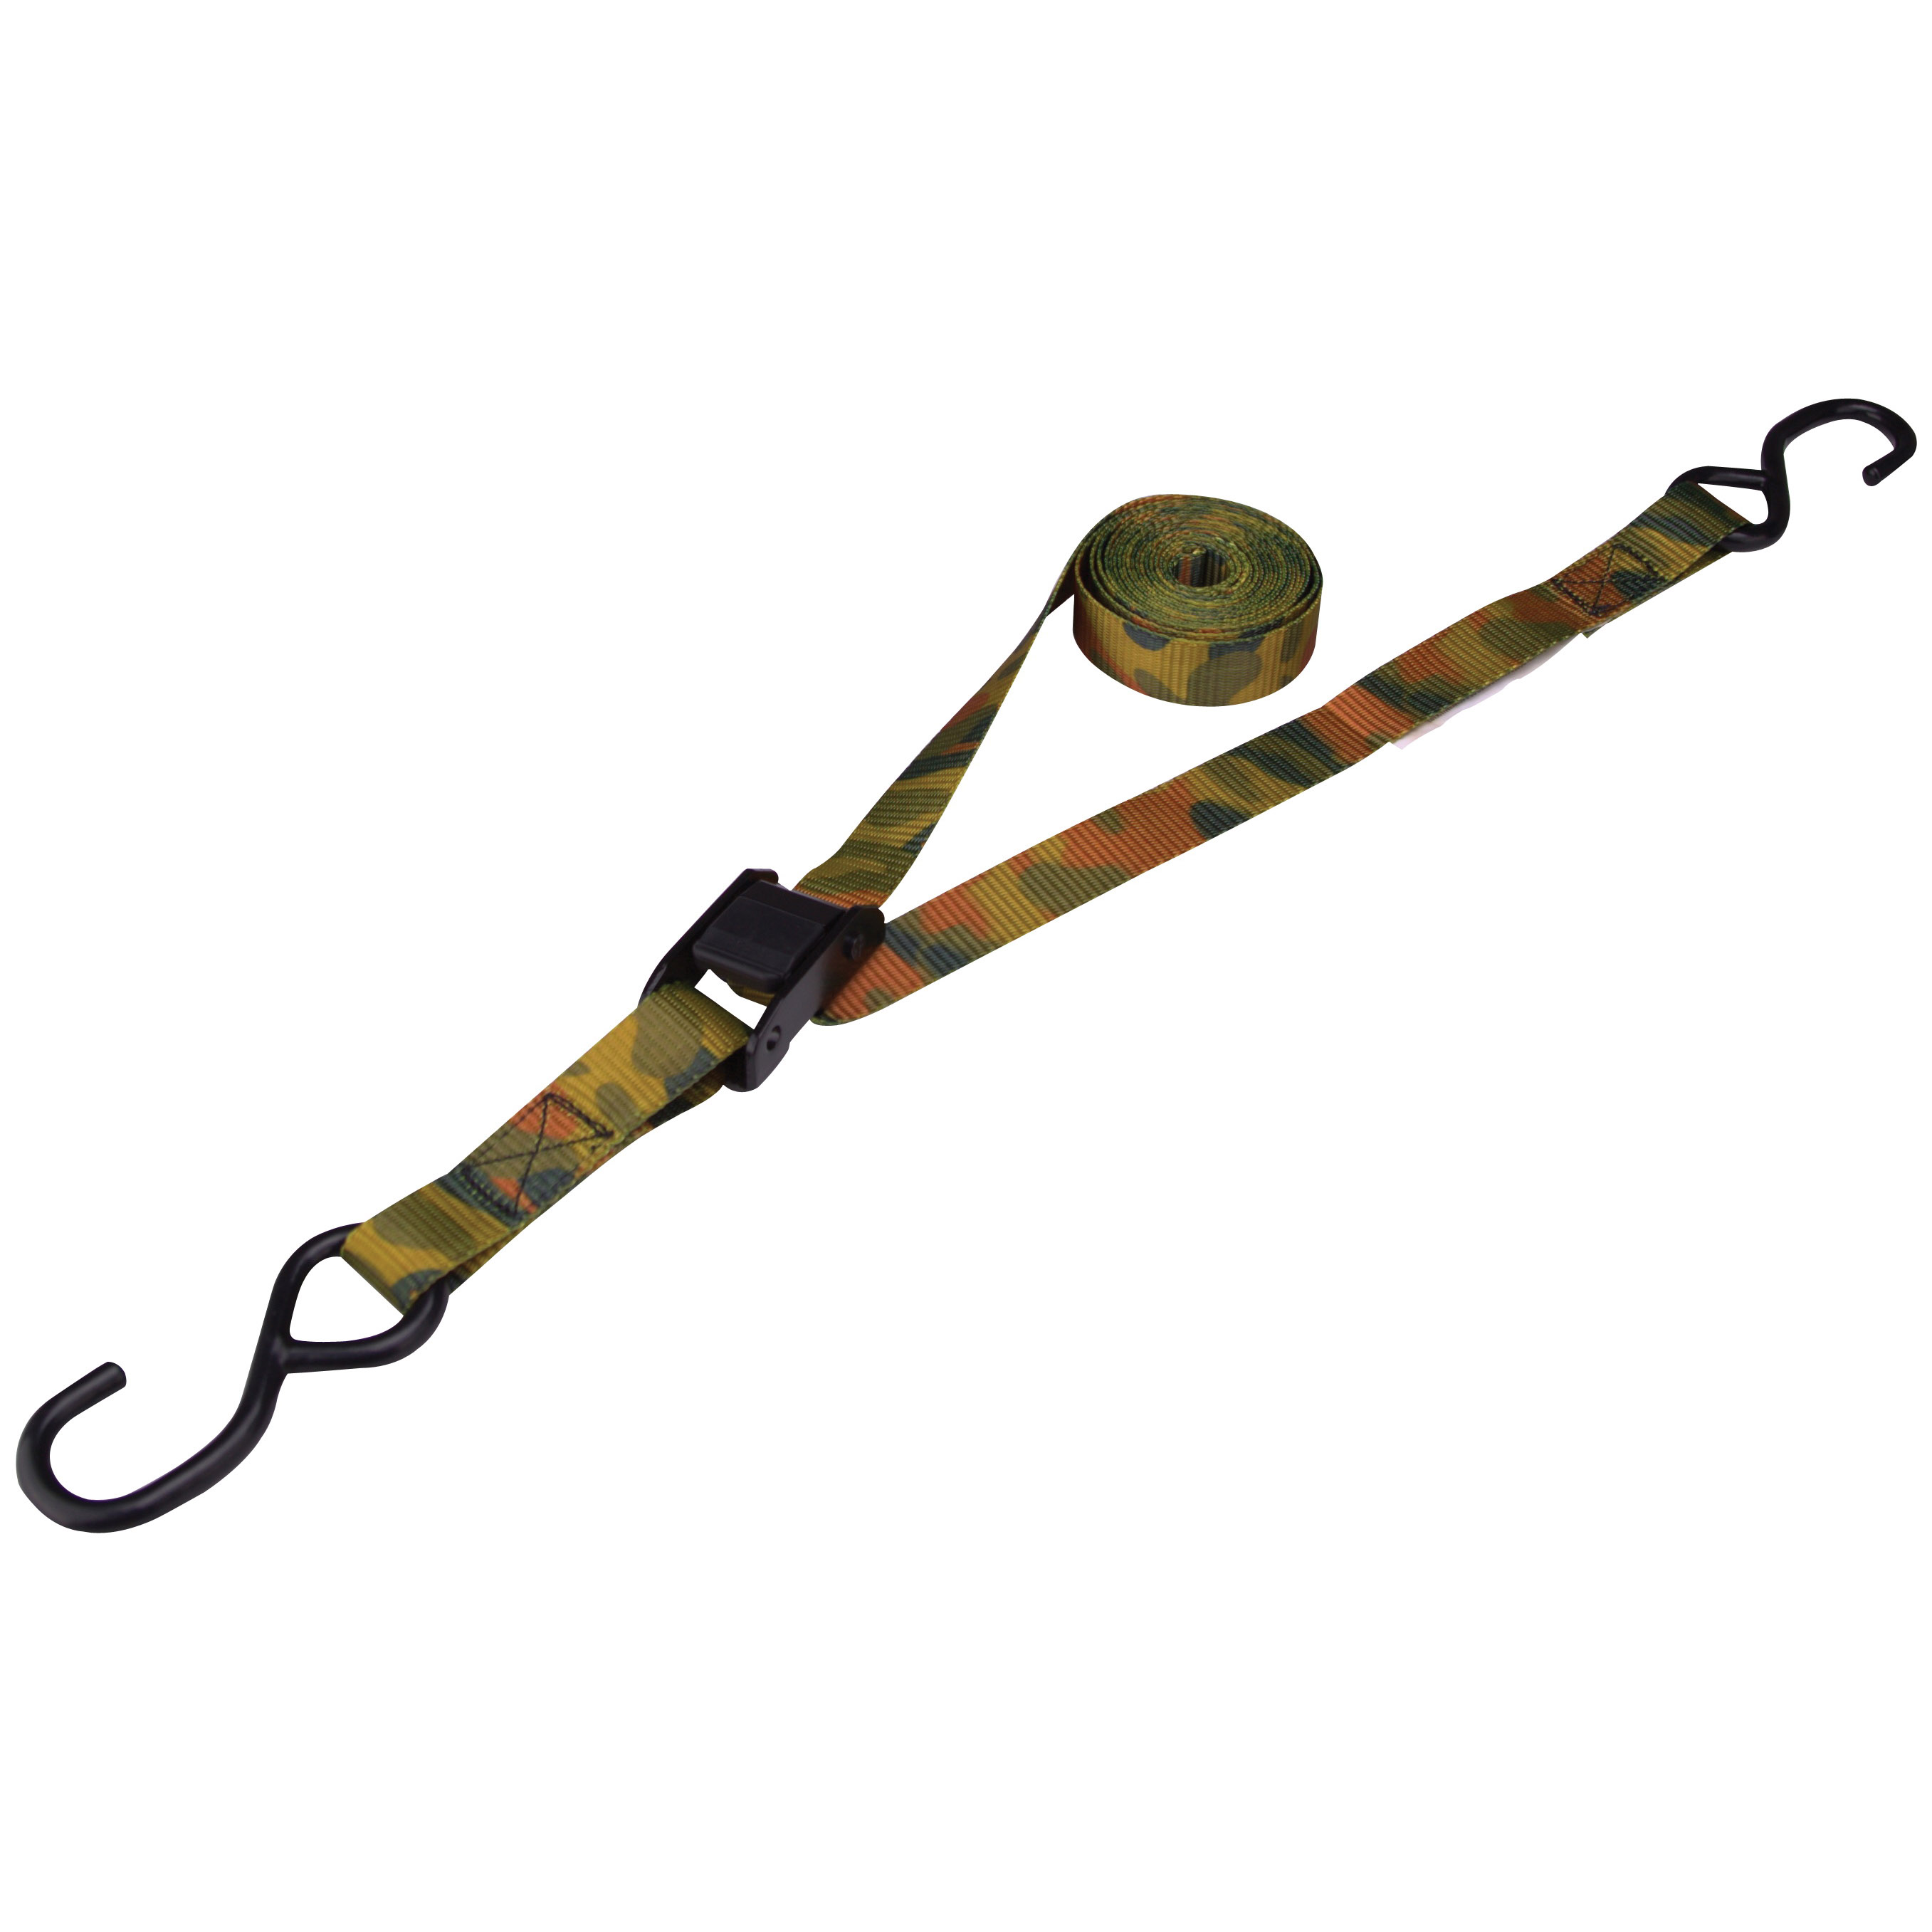 Picture of ProSource FH64068 Tie-Down, 1 in W, 10 ft L, Polyester Webbing, Metal Buckle, Camouflage, 400 lb